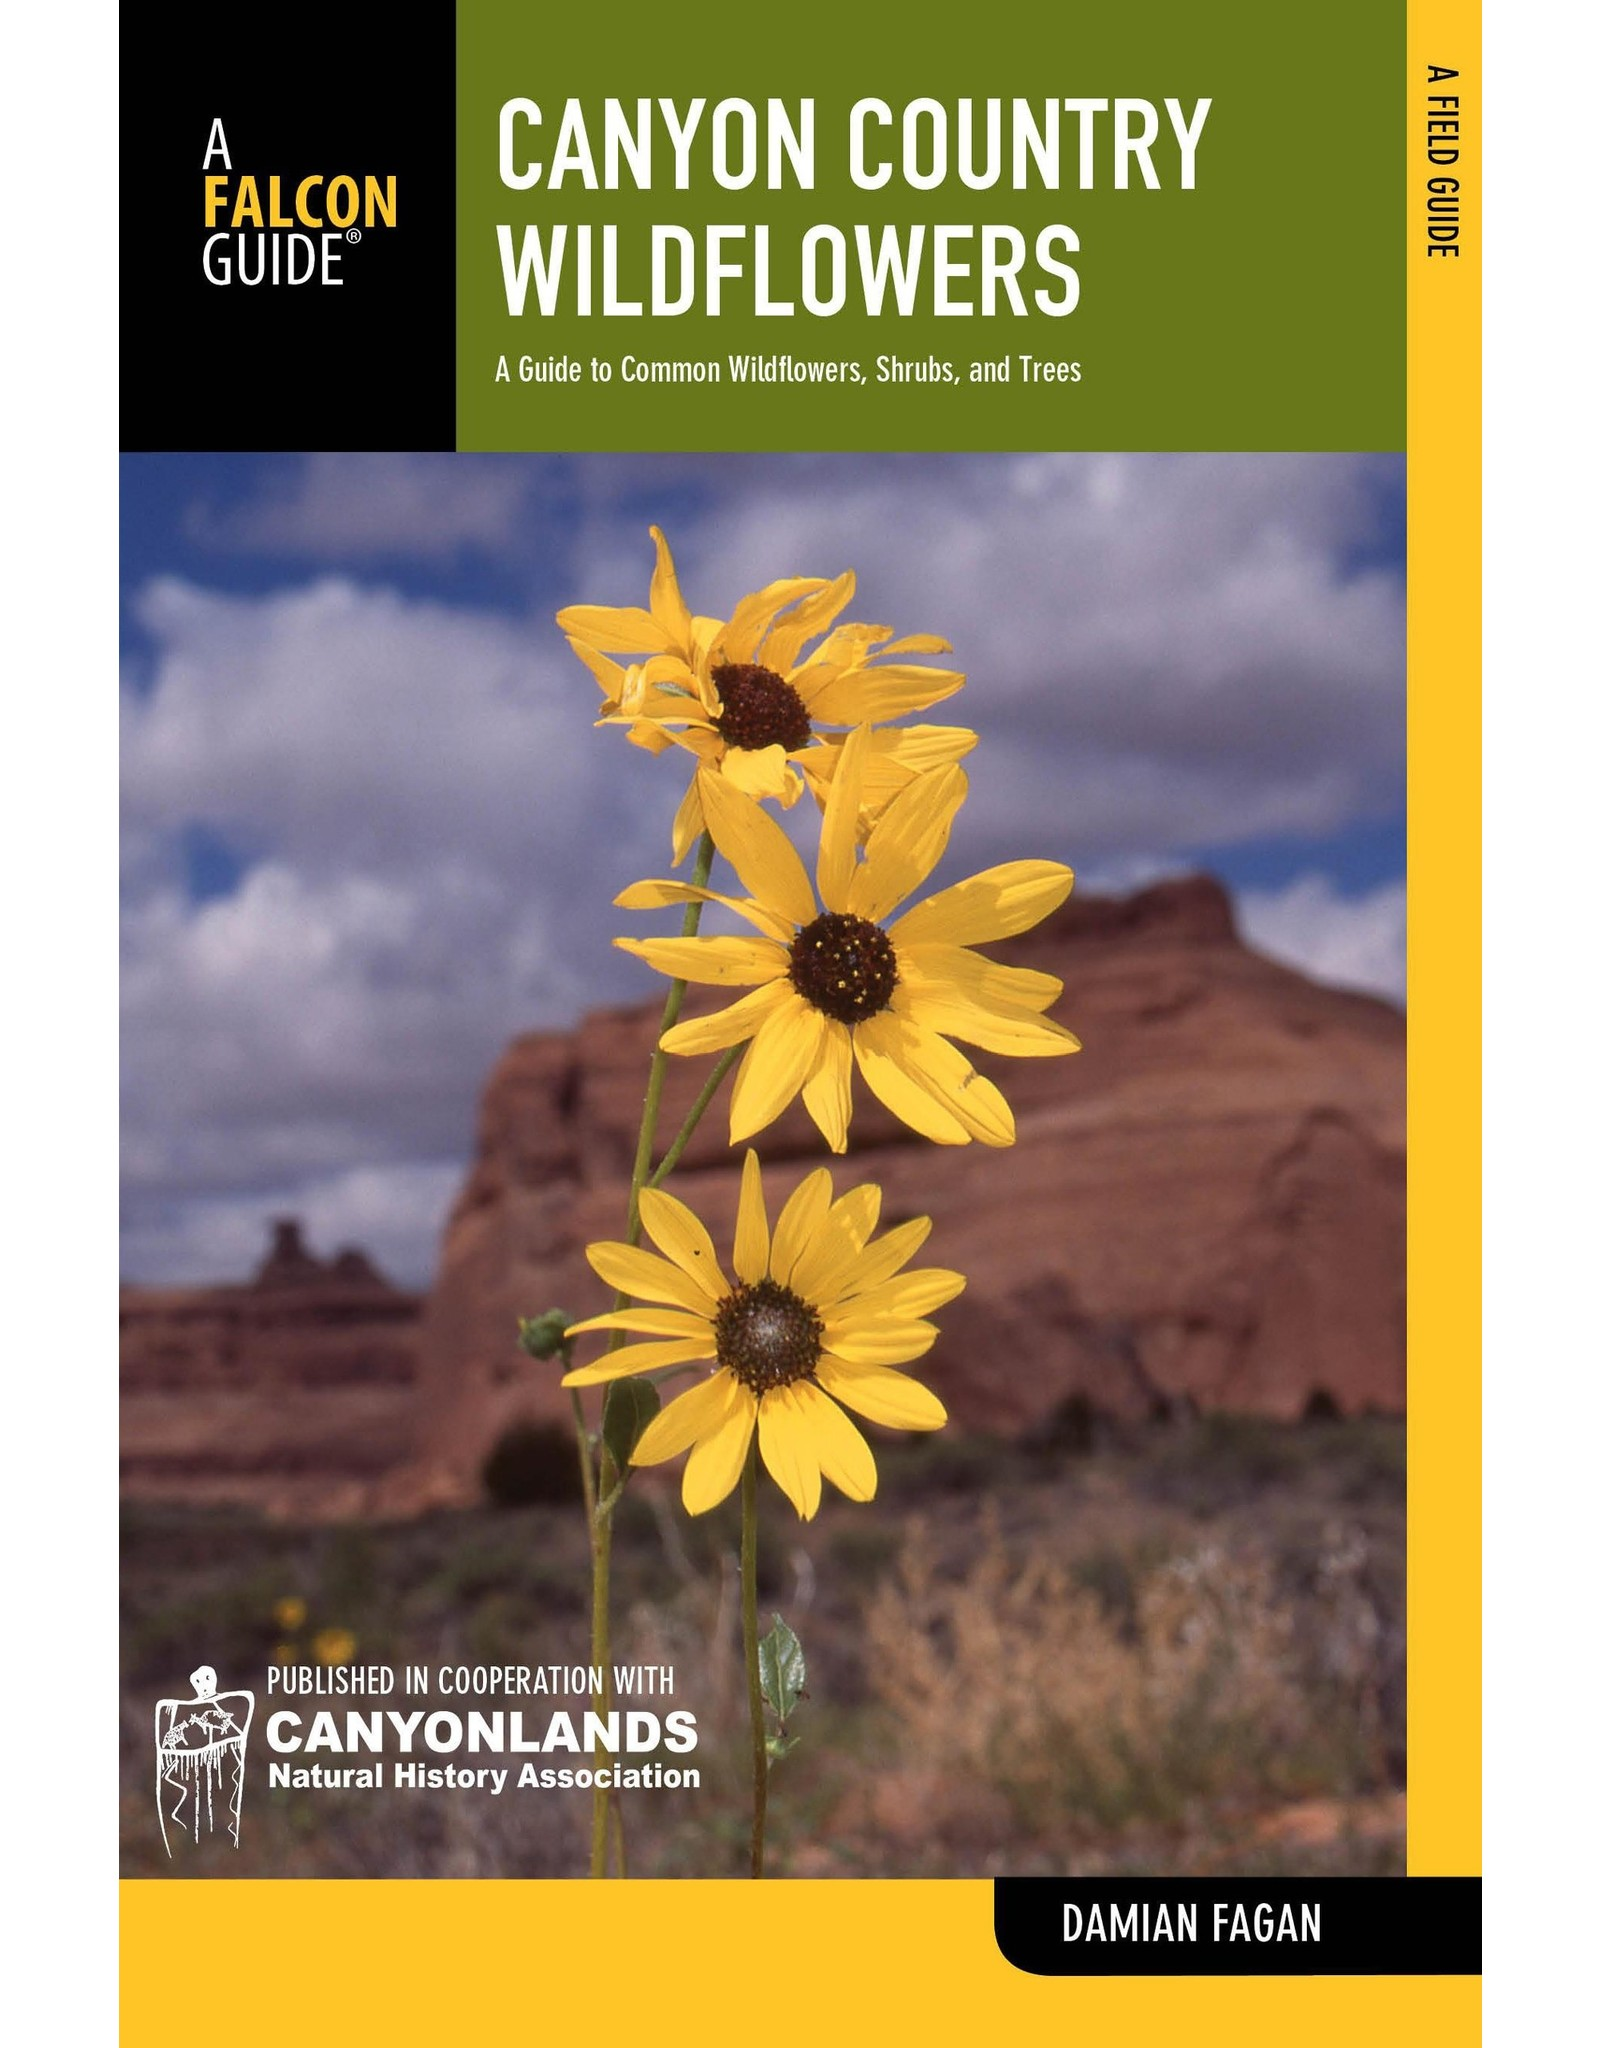 NATIONAL BOOK NETWRK Canyon Country Wildflowers: A Guide To Common Wildflowers, Shrubs, And Trees (Wildflower Series)Paperback